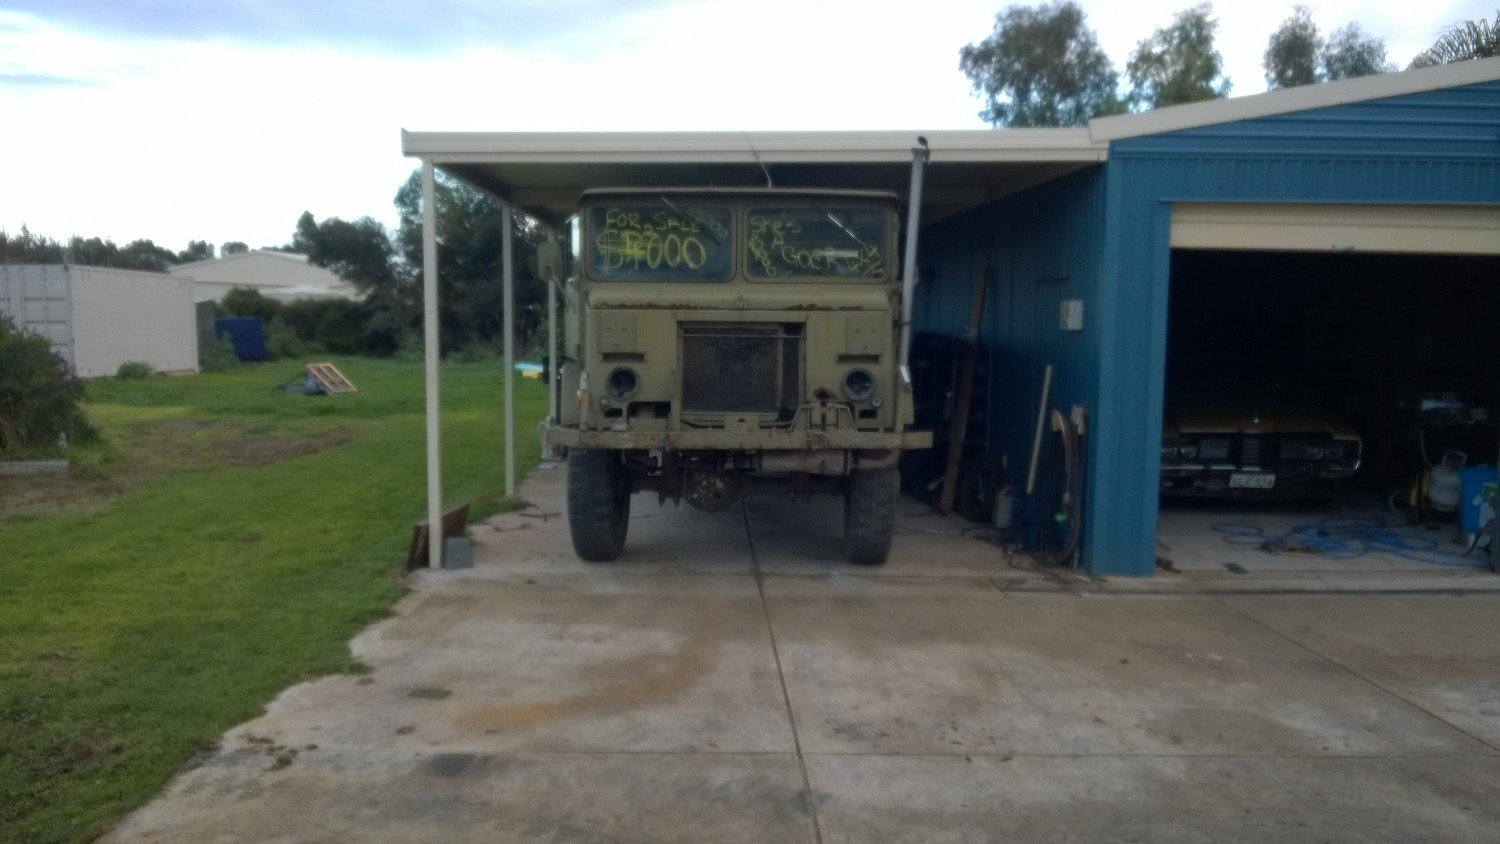 1968 International Harvester Harvester Mk4 4x4